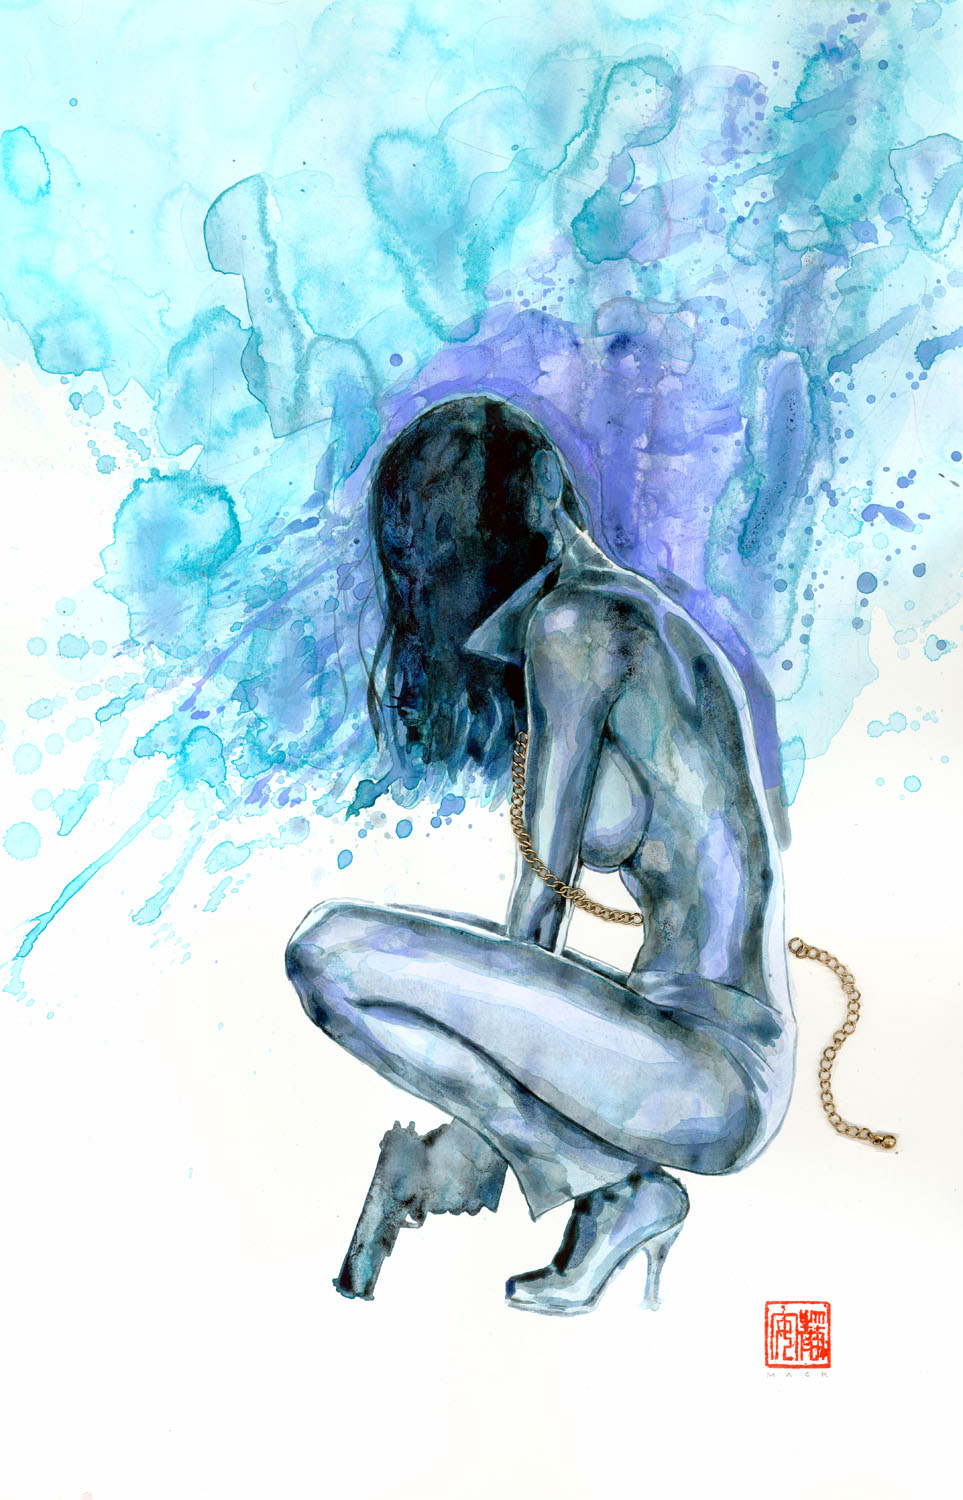 David Mack Has Kindly Shared The Artwork That Will Appear On The Variant  Edition Of The Cross Bronx #4, Which Will Feature A Story Cowritten And